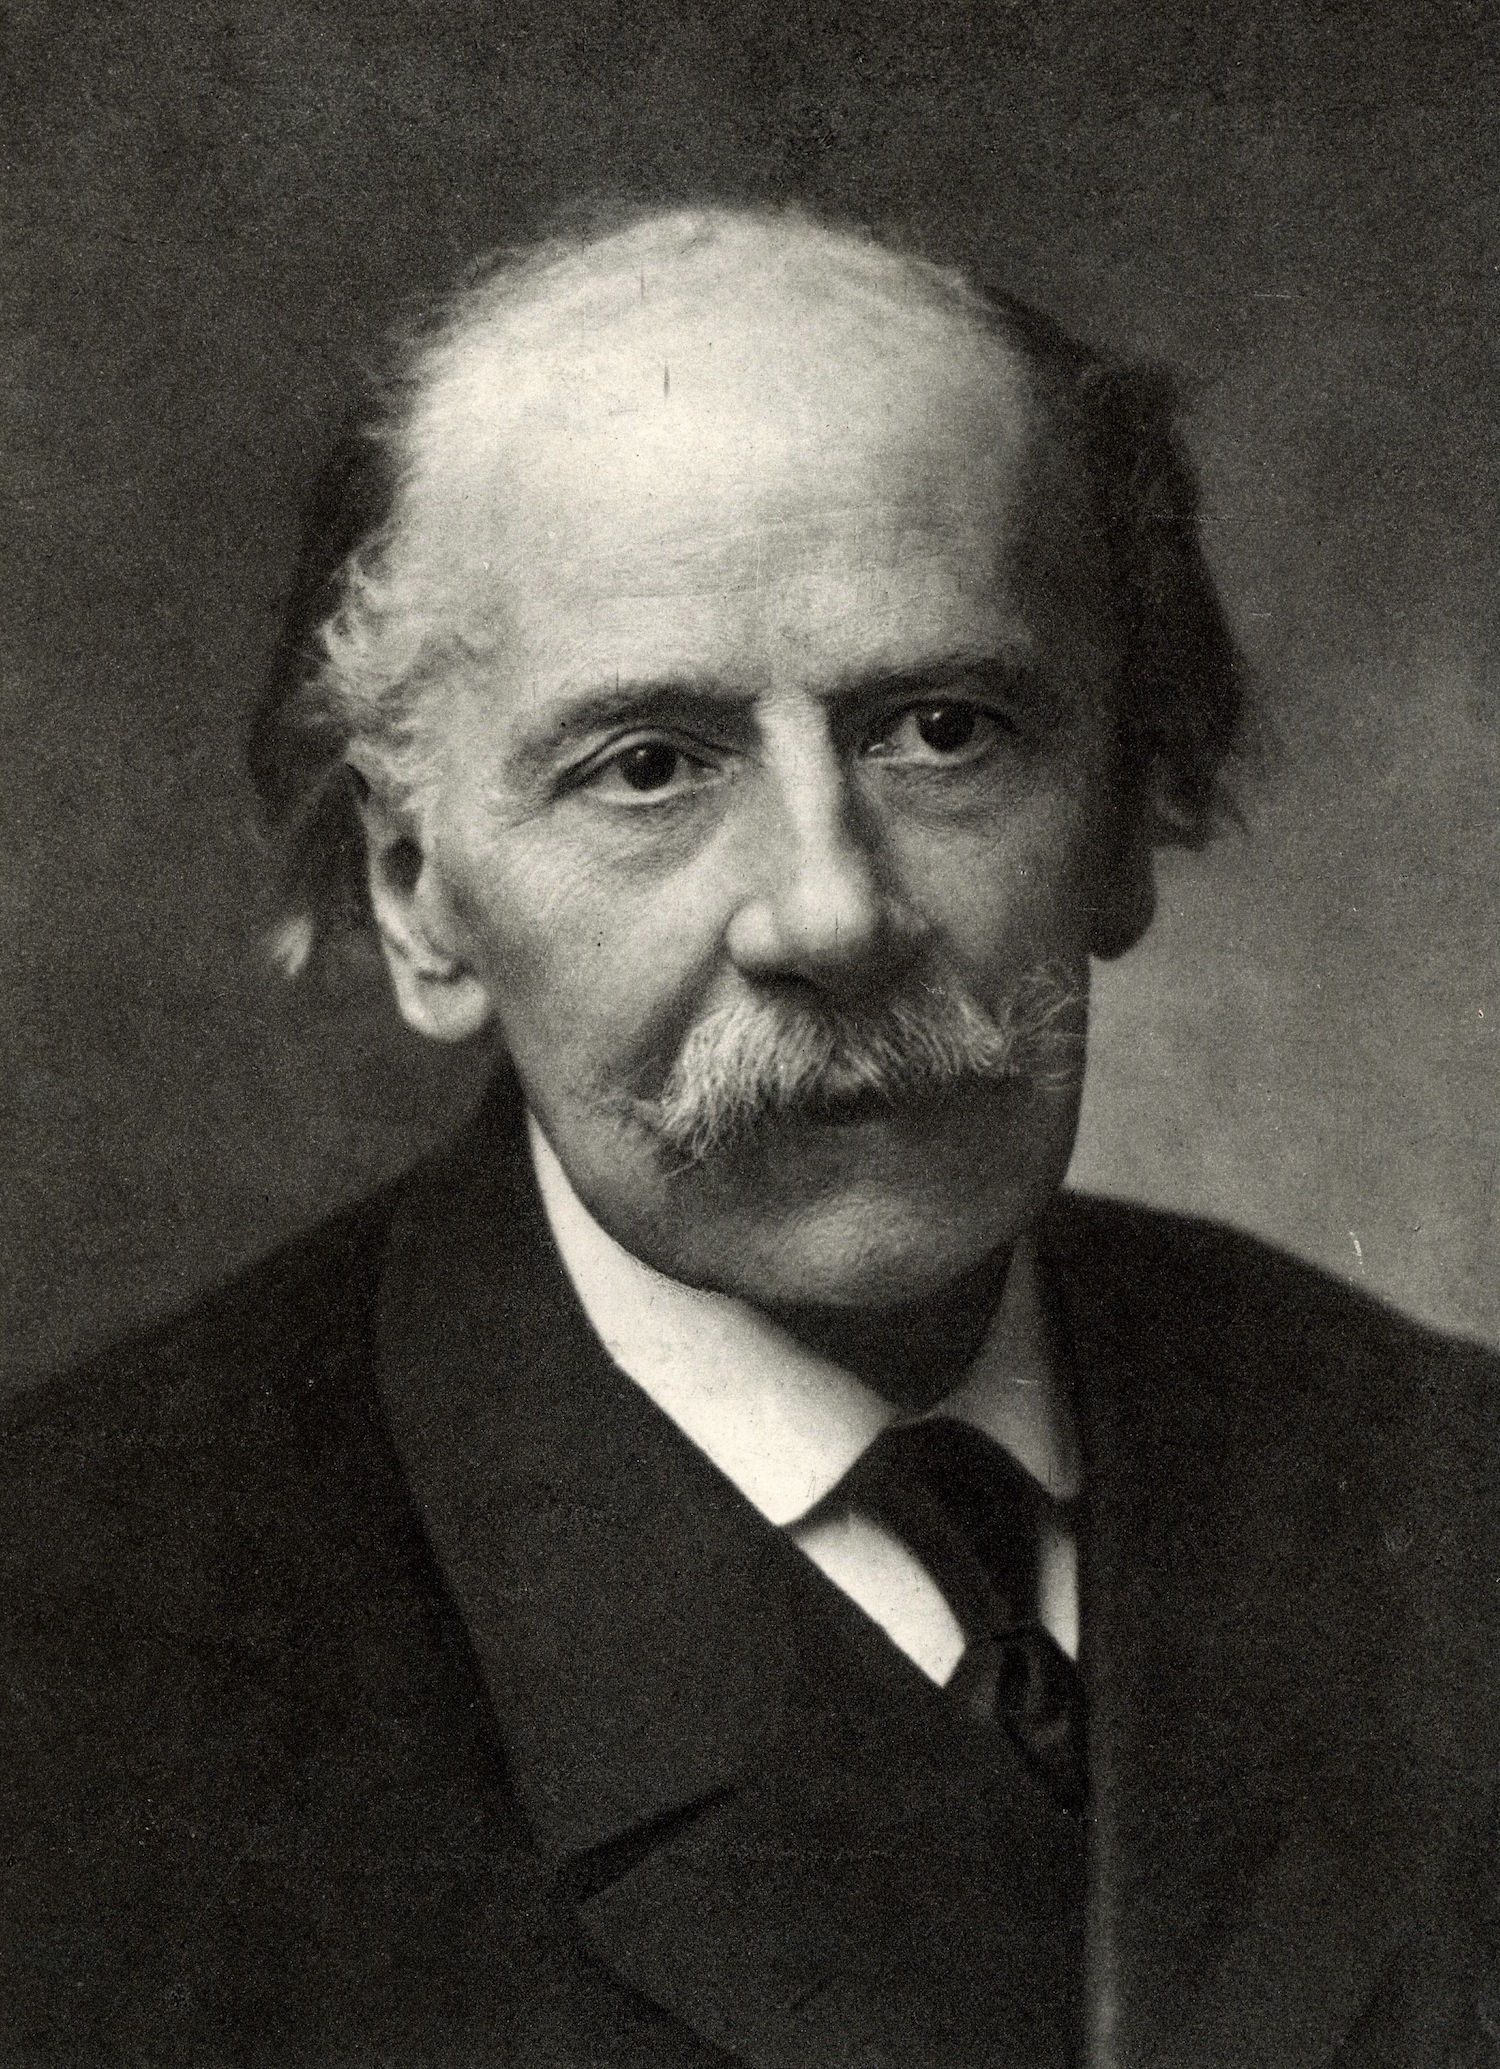 Jules (Emile Frederic) Massenet (1842-1912). French composer. From a photograph by Nadar, pseudonym of Gaspard-Felix Tournachon (1820-1910). History